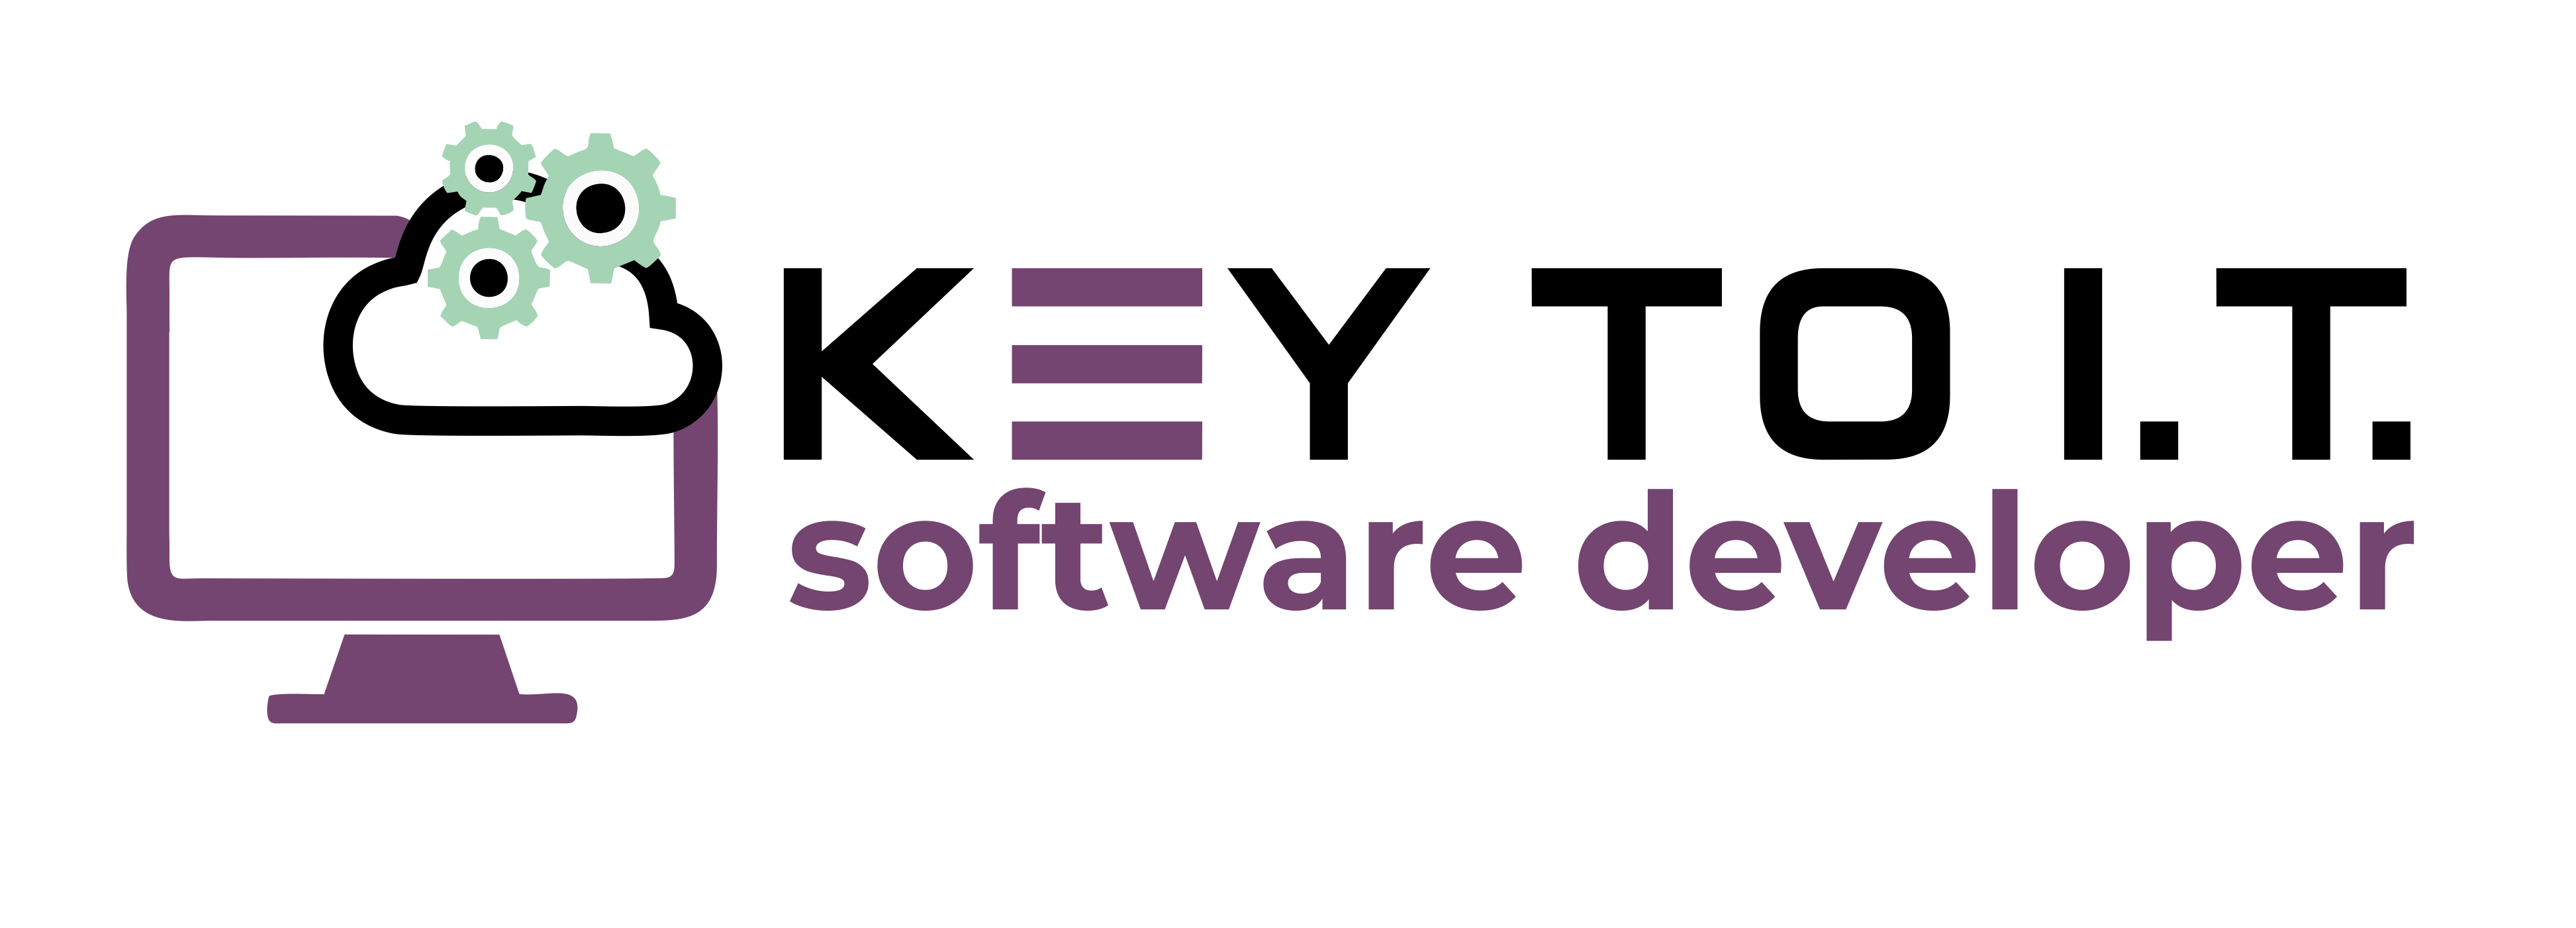 Key to I.T. Logo